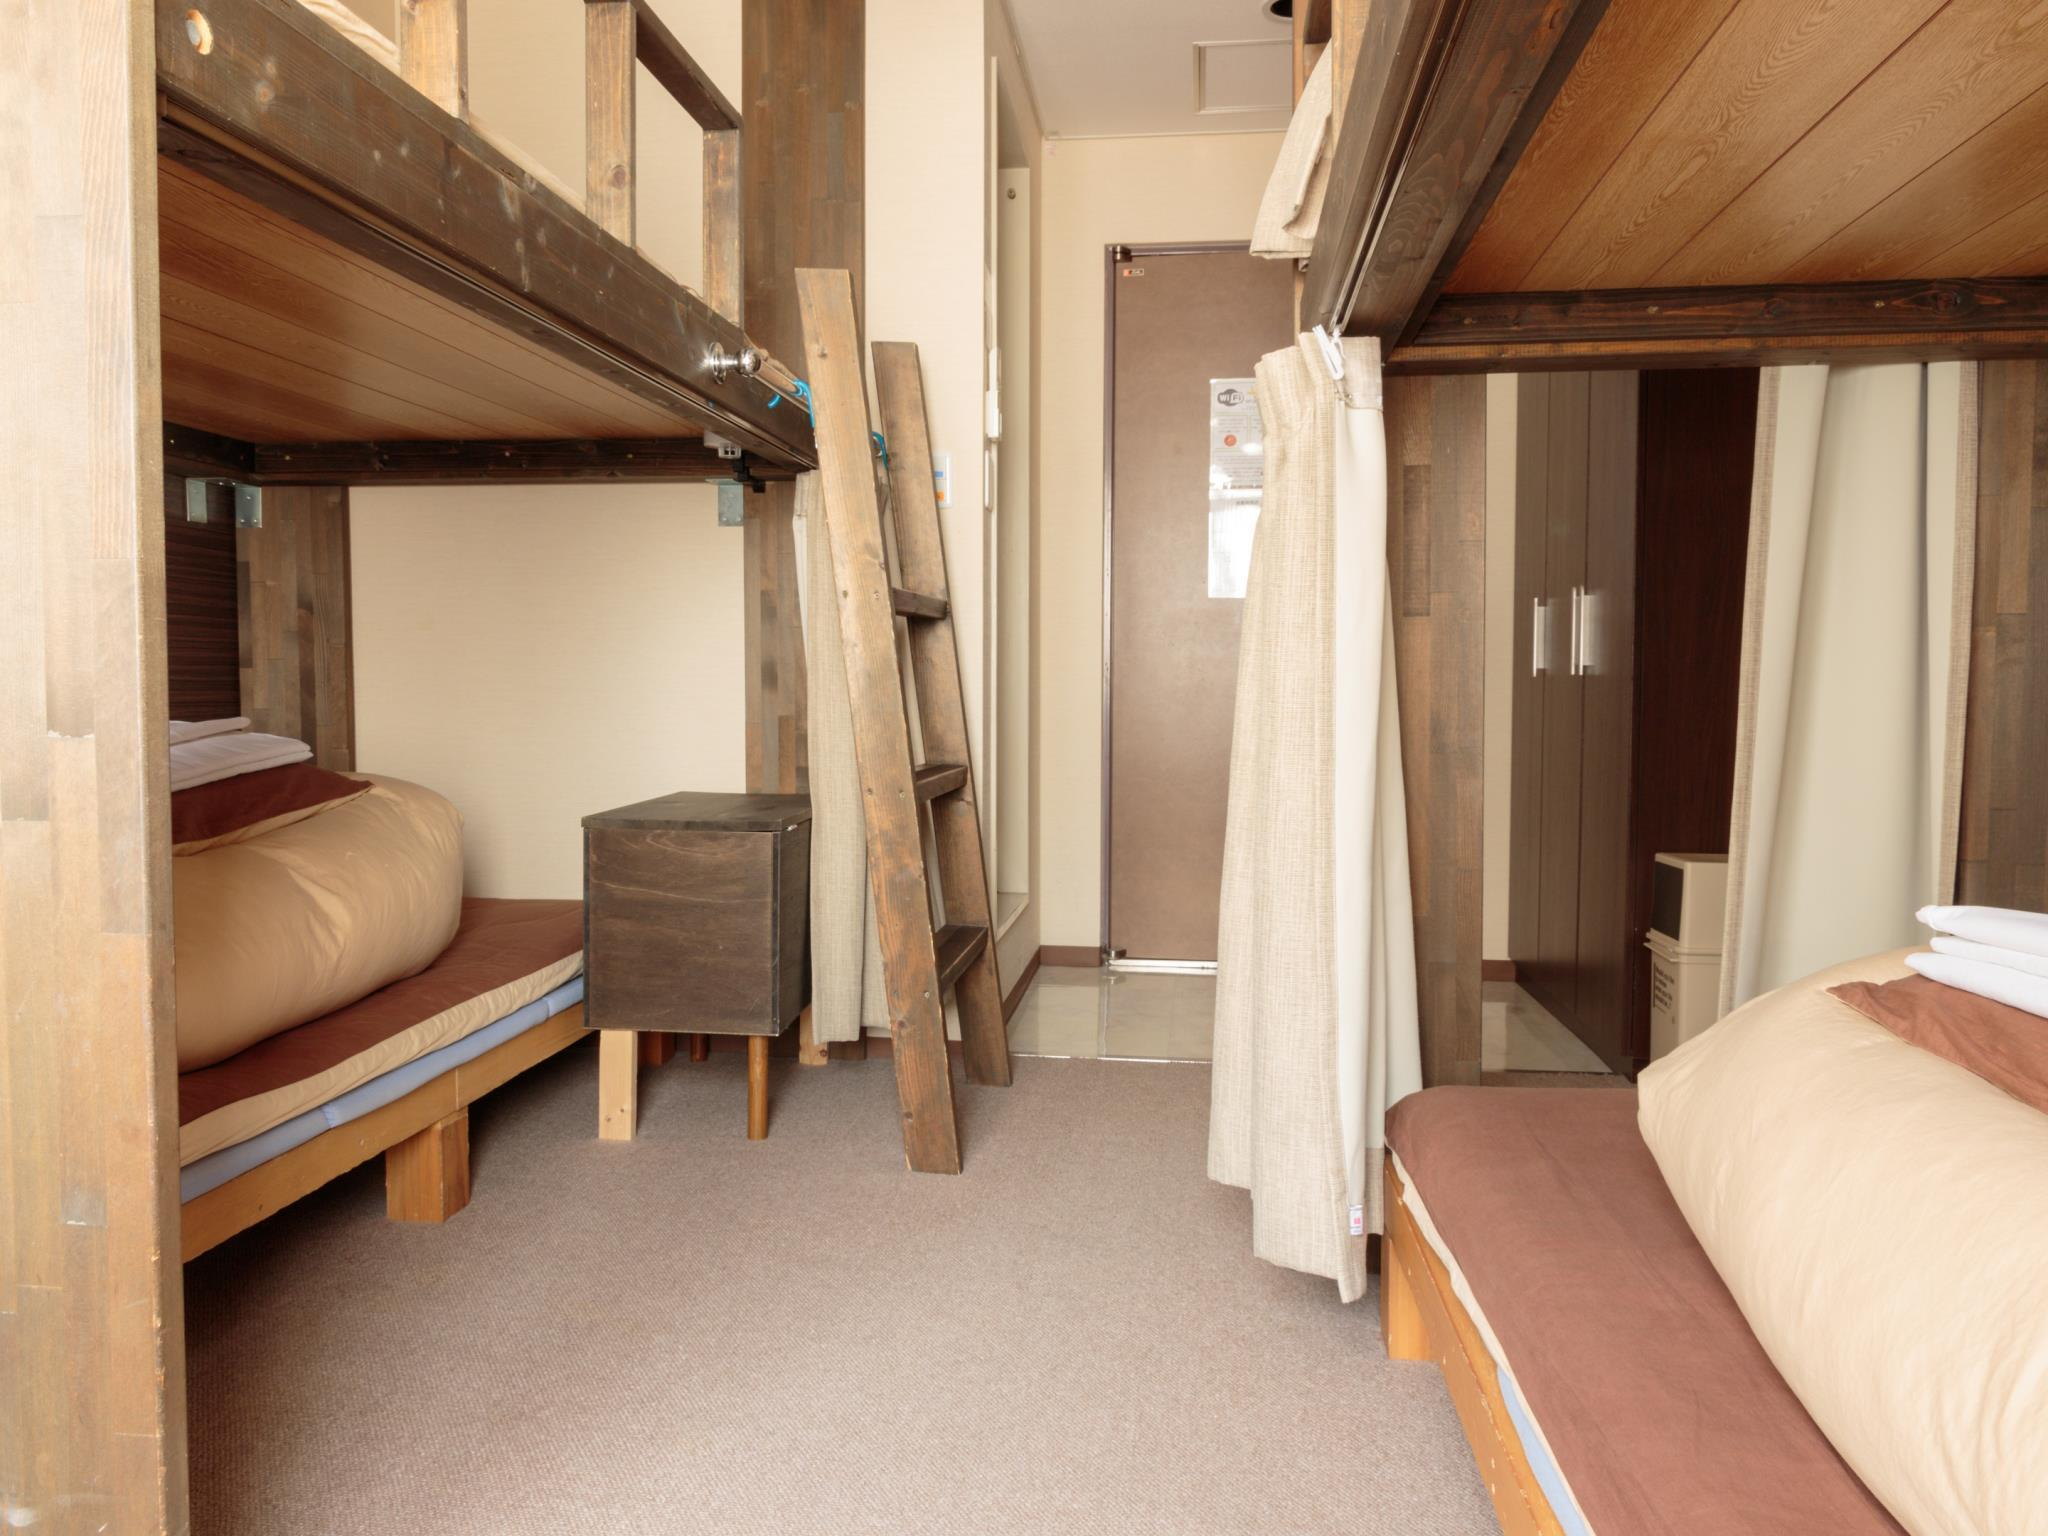 1 Person in 4-Bed Dormitory with Private Bathroom - Mixed